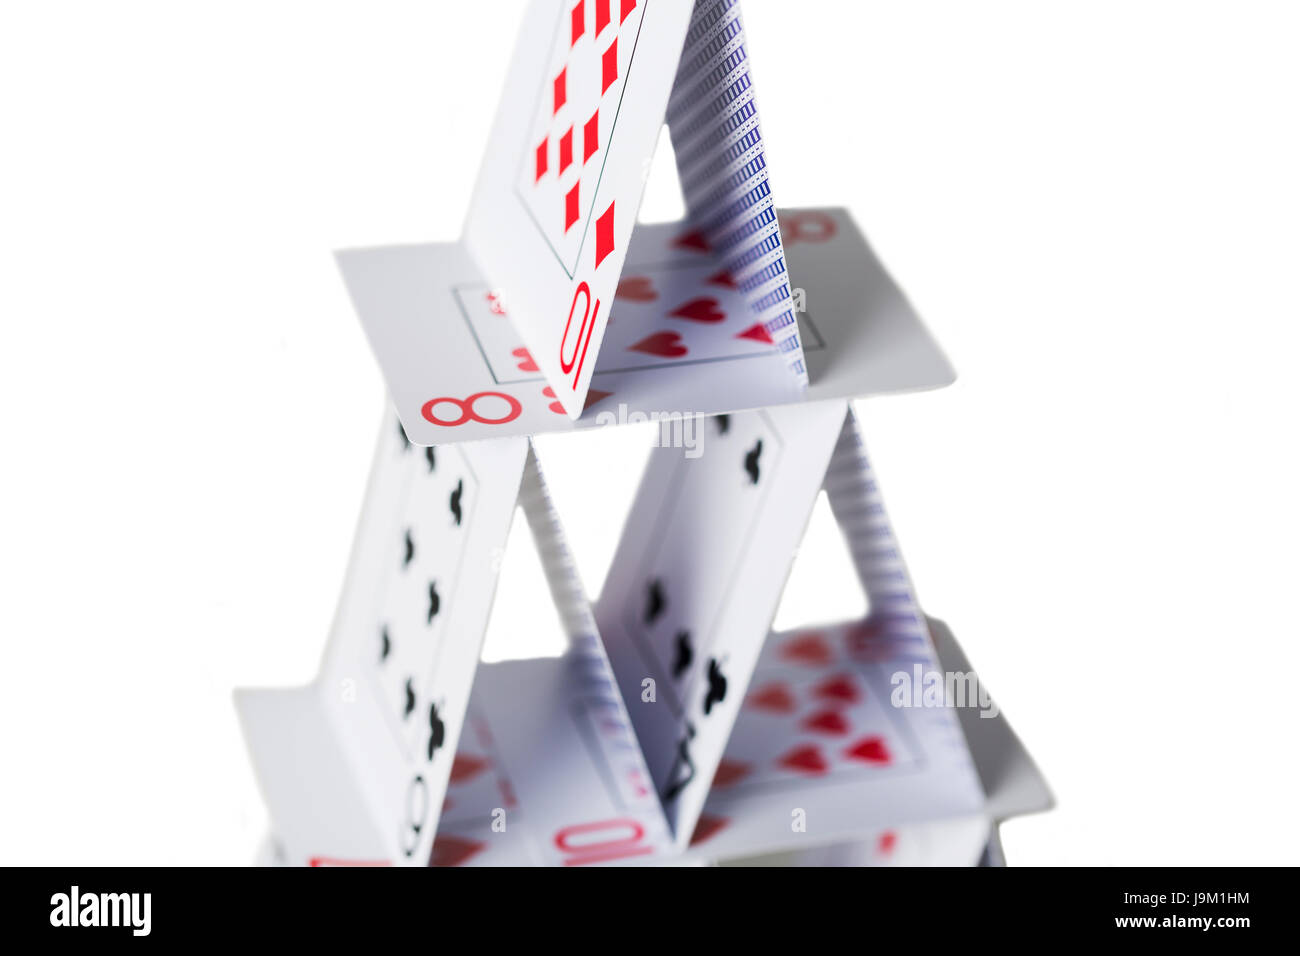 house of playing cards over white background - Stock Image